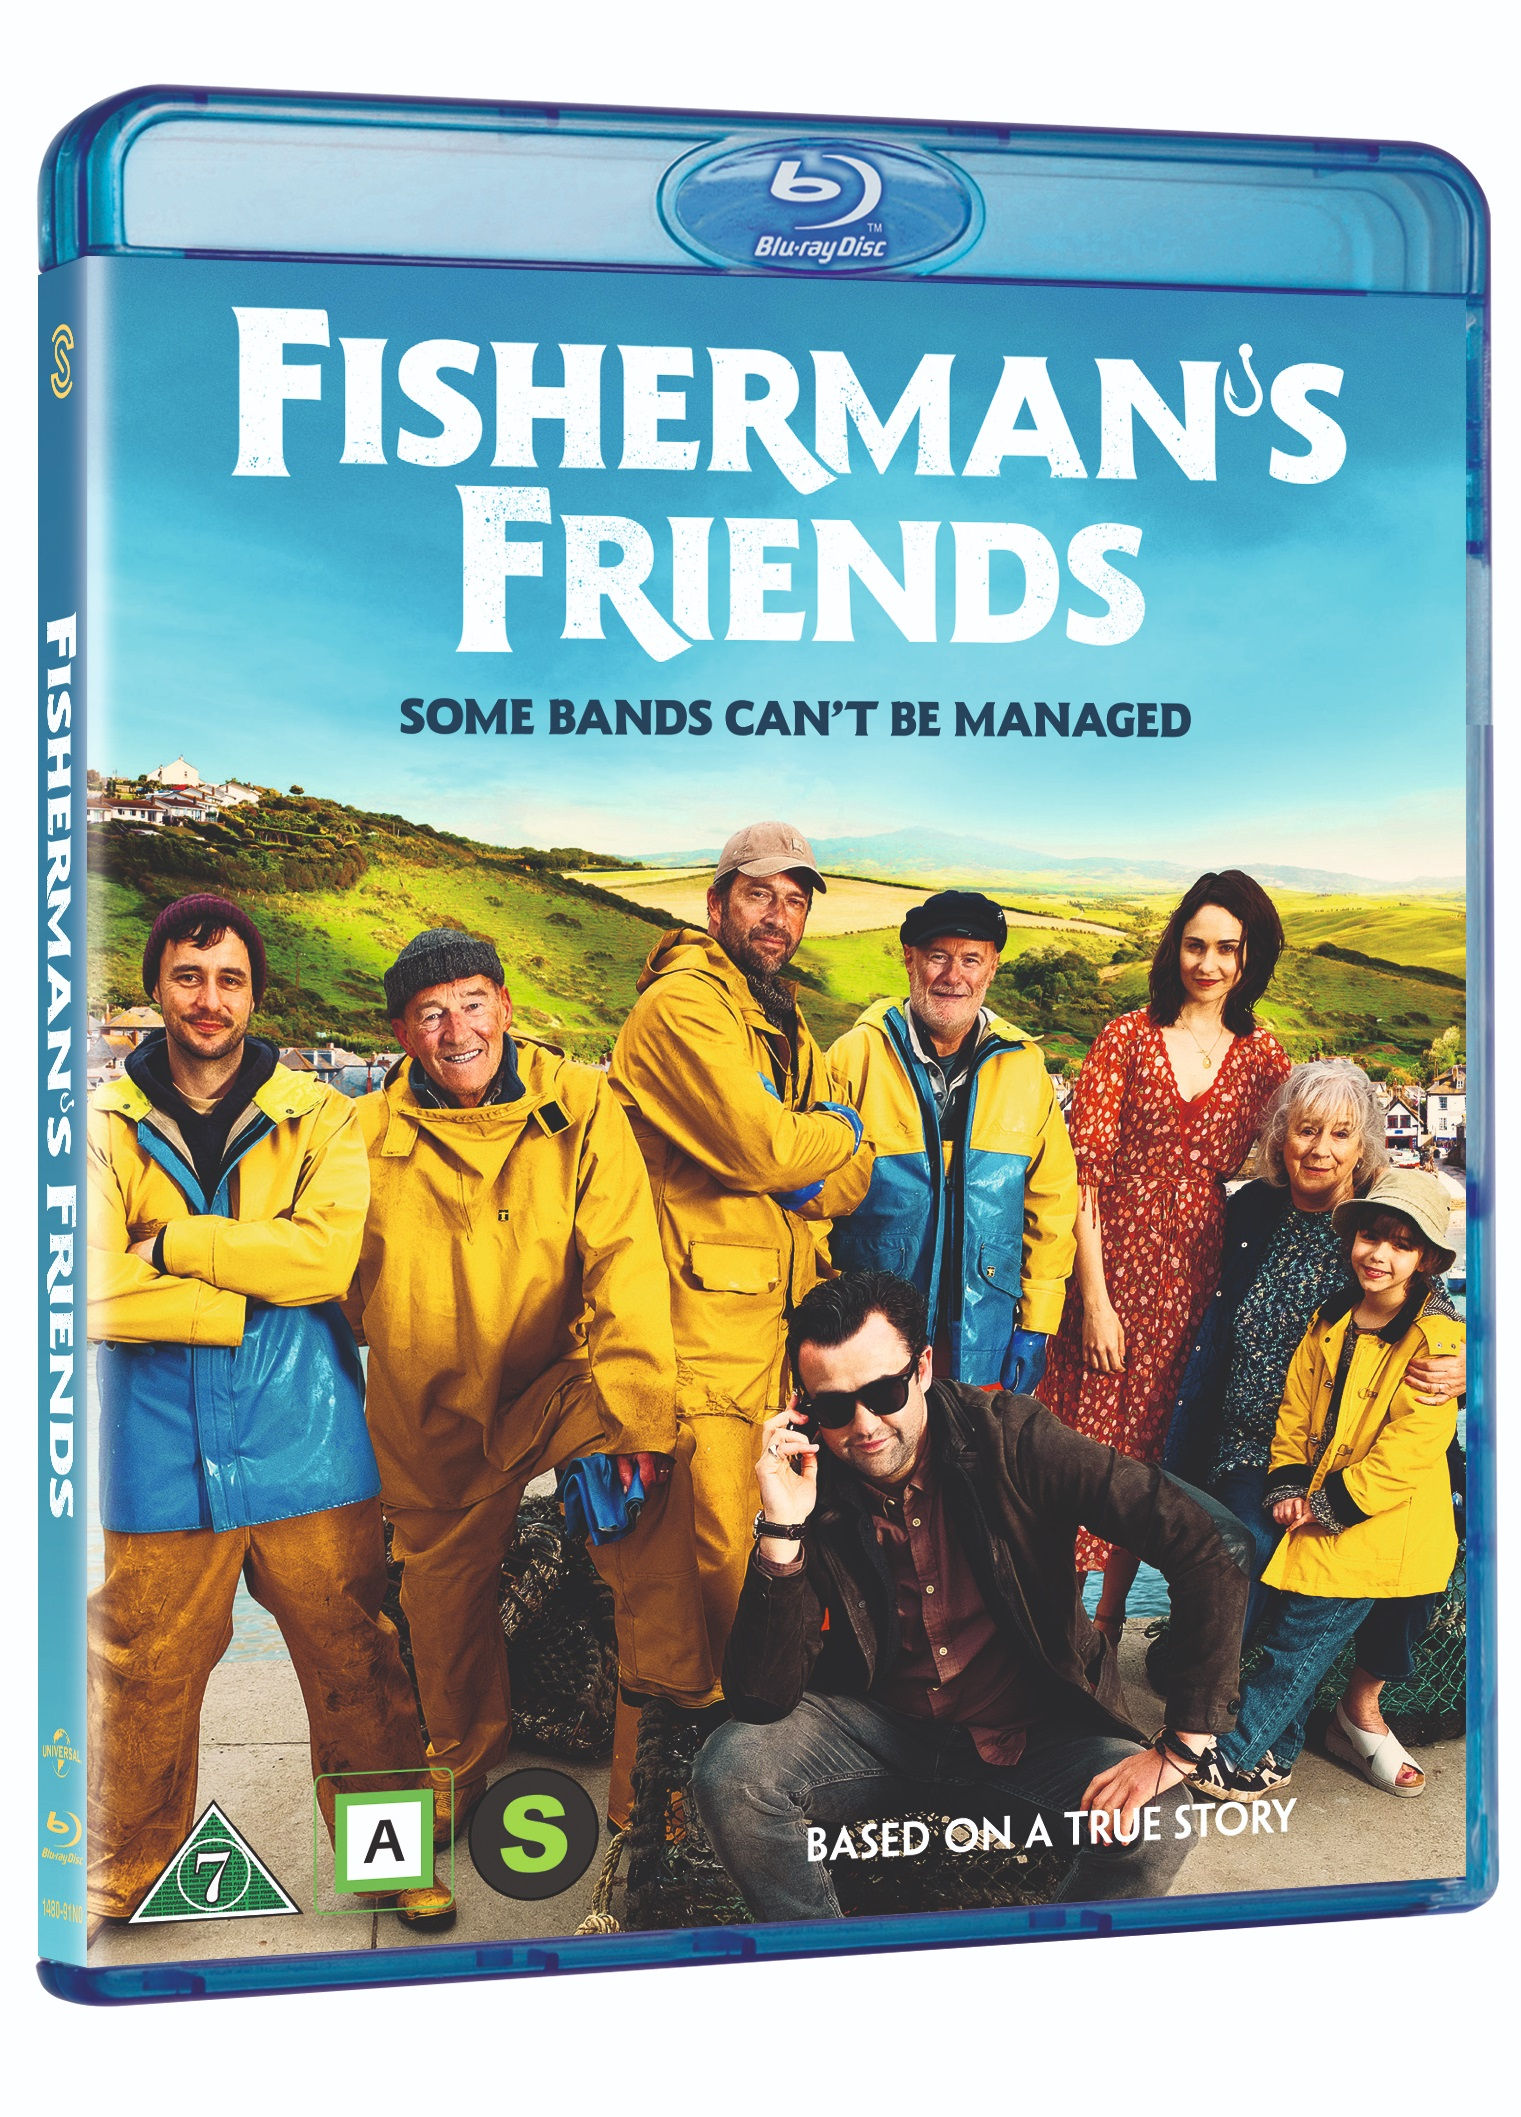 Fisherman's Friends -  - Film -  - 5706169001968 - 12/12-2019